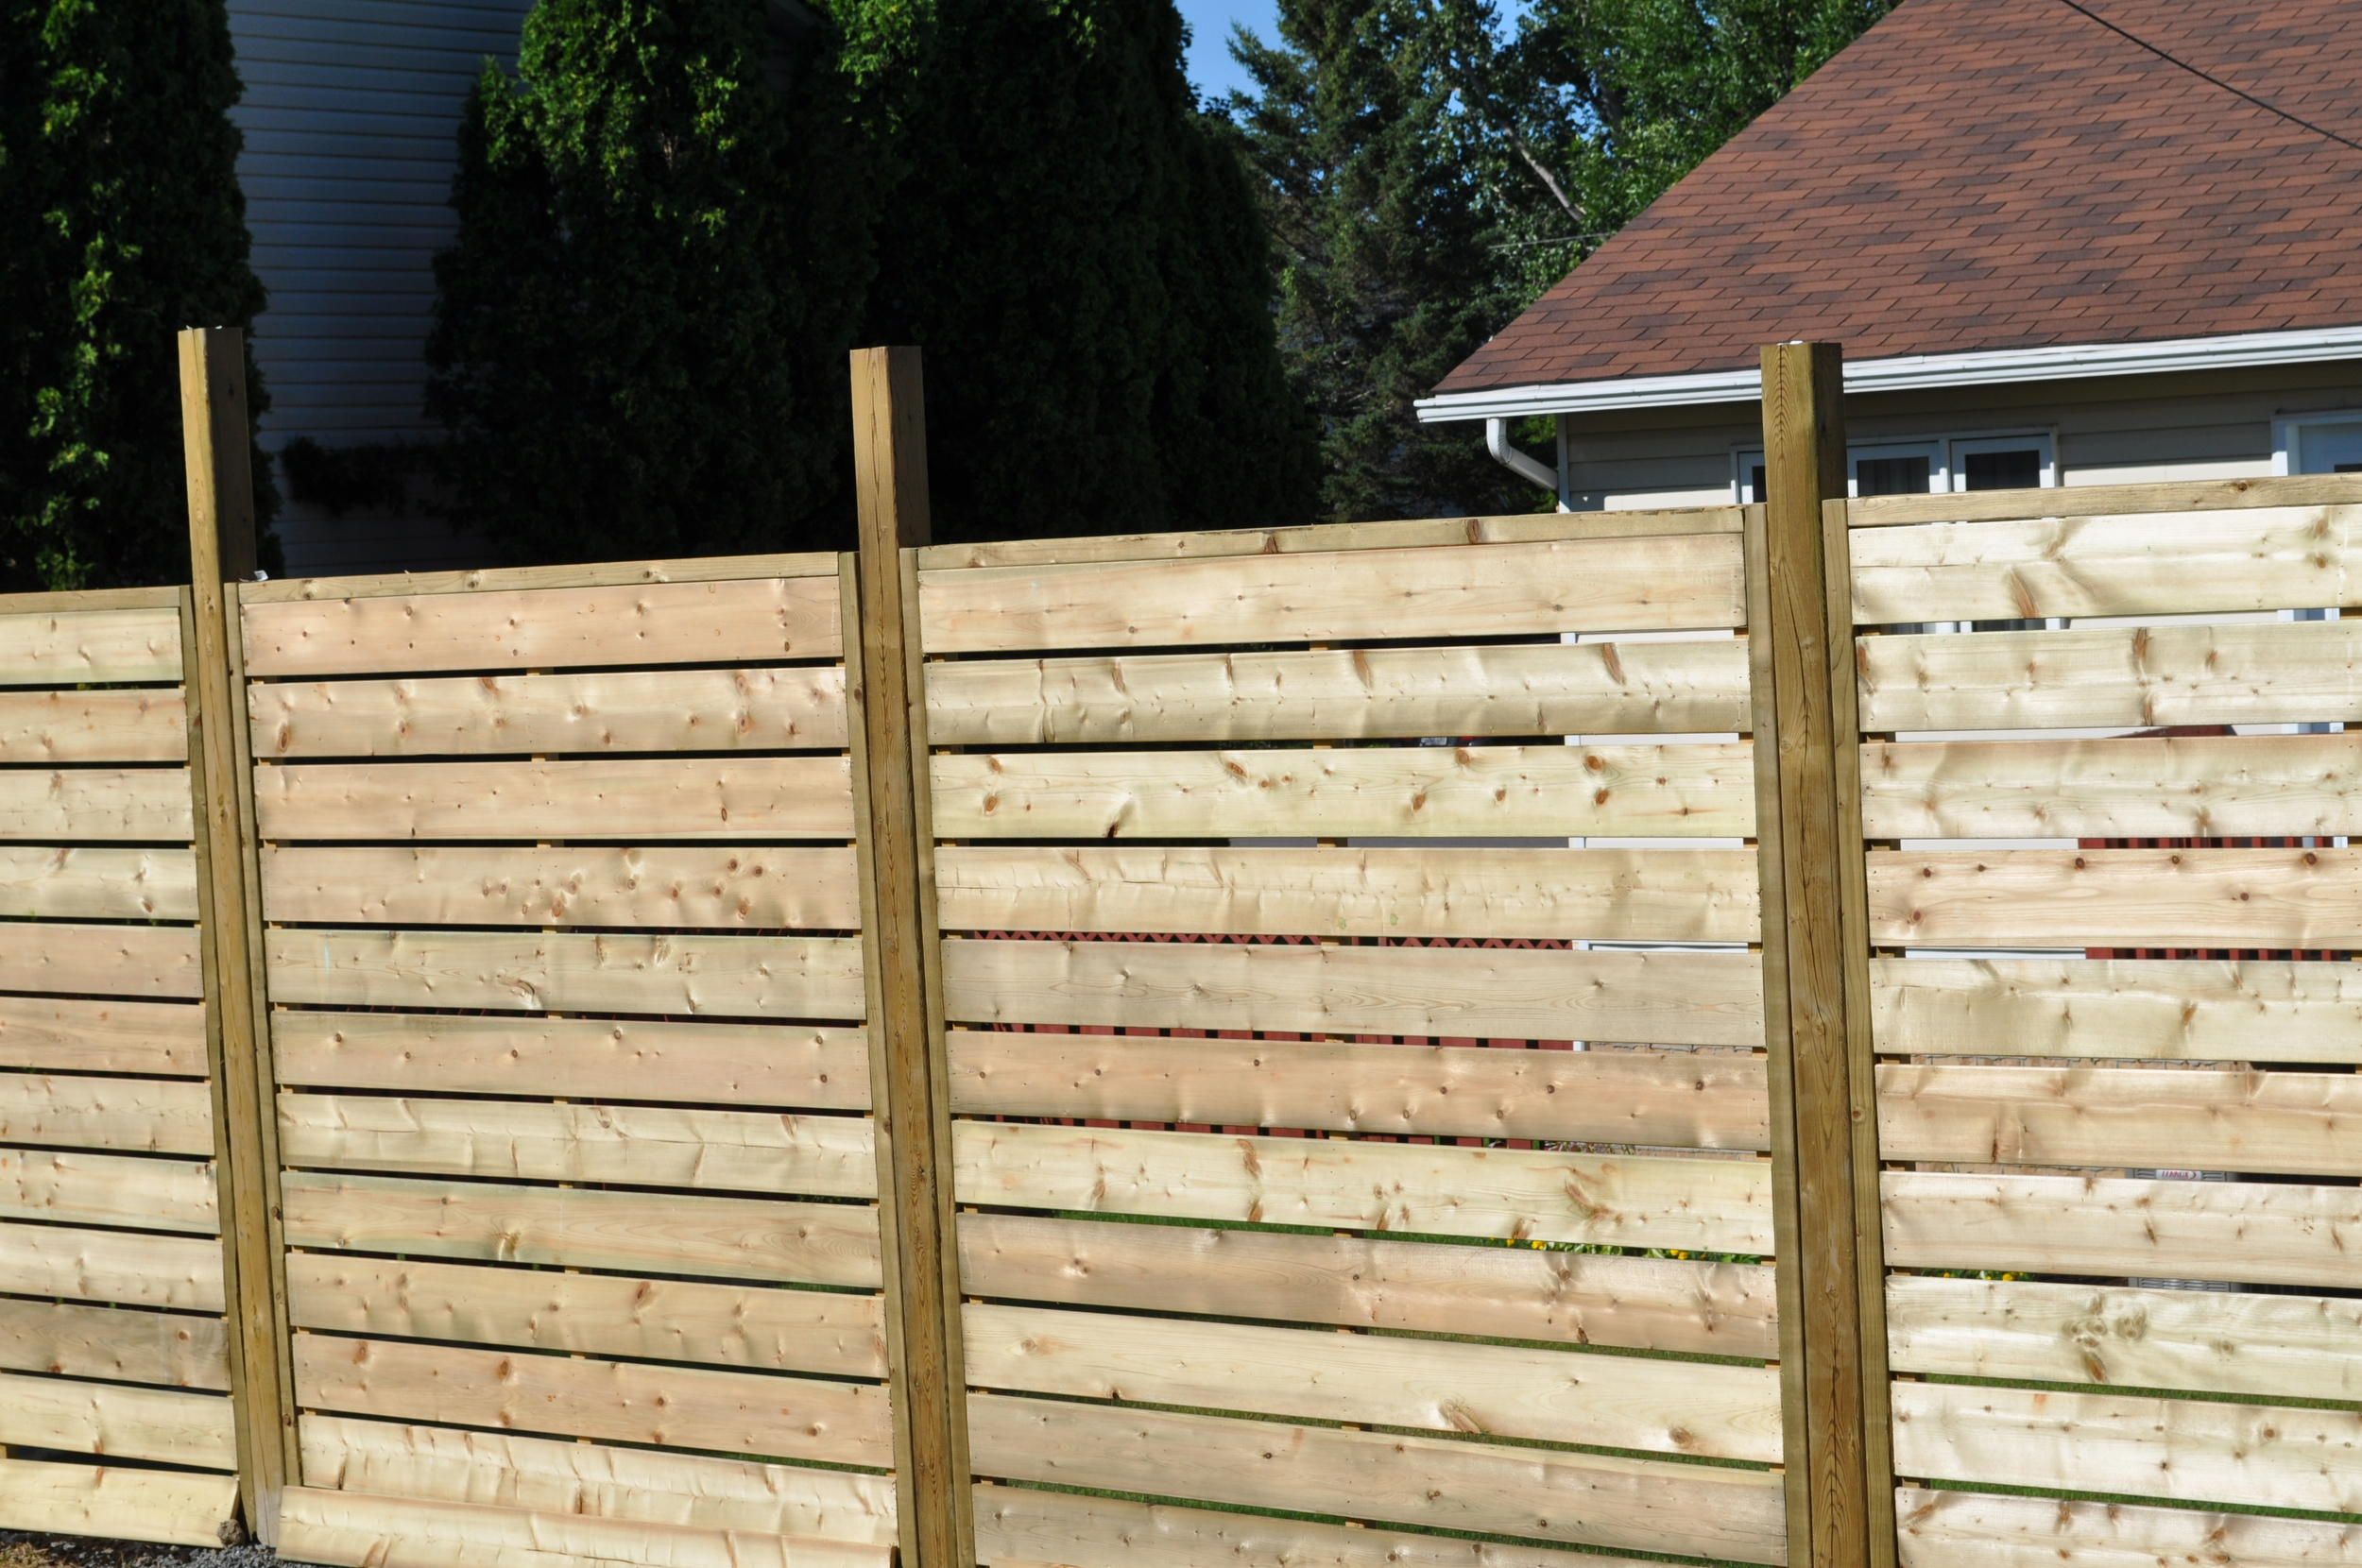 Closeup view of fence panels